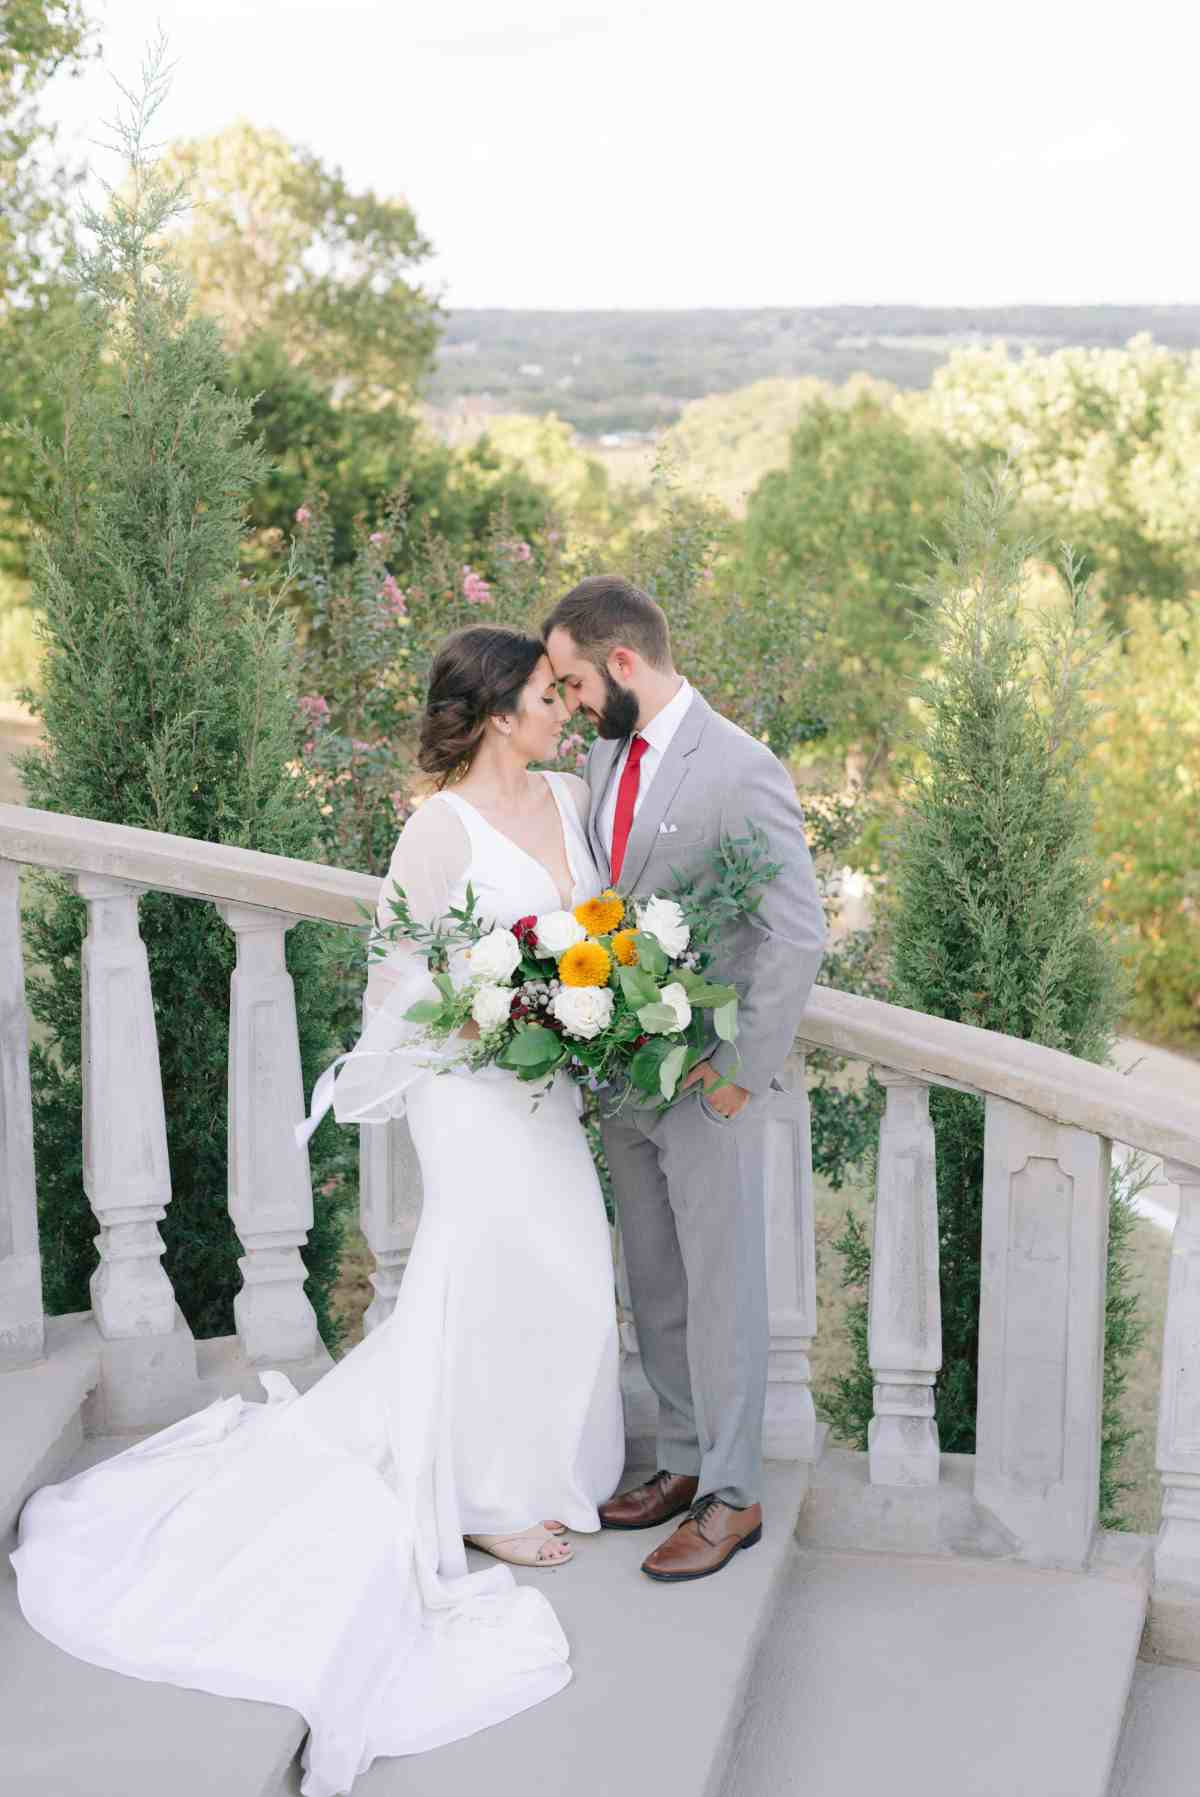 Romantic Bride and Groom Portraits at Stoney Ridge Villa Italian Wedding Azle Texas